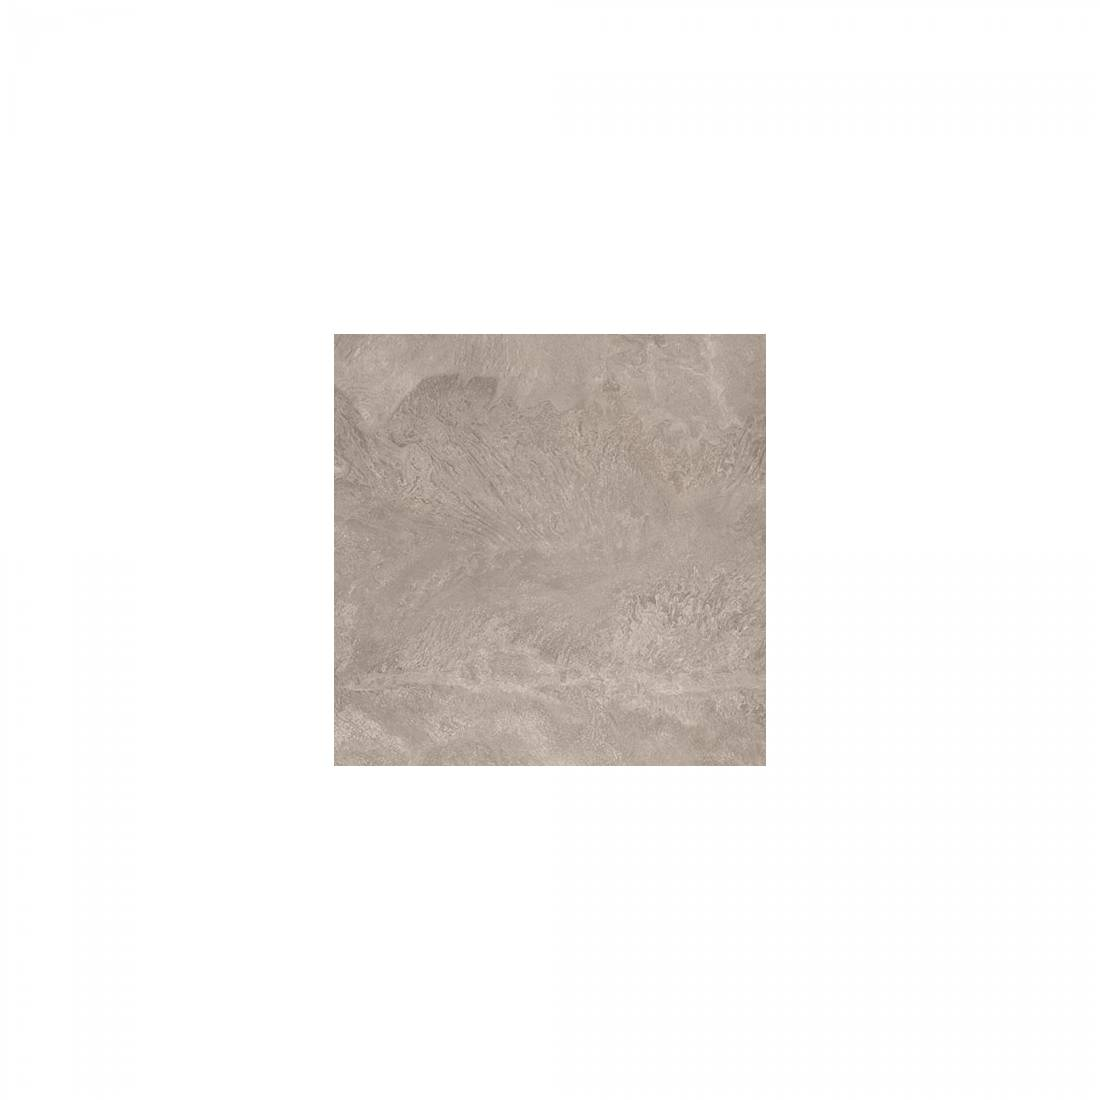 Oceanic 60x60 Gris Polished 1